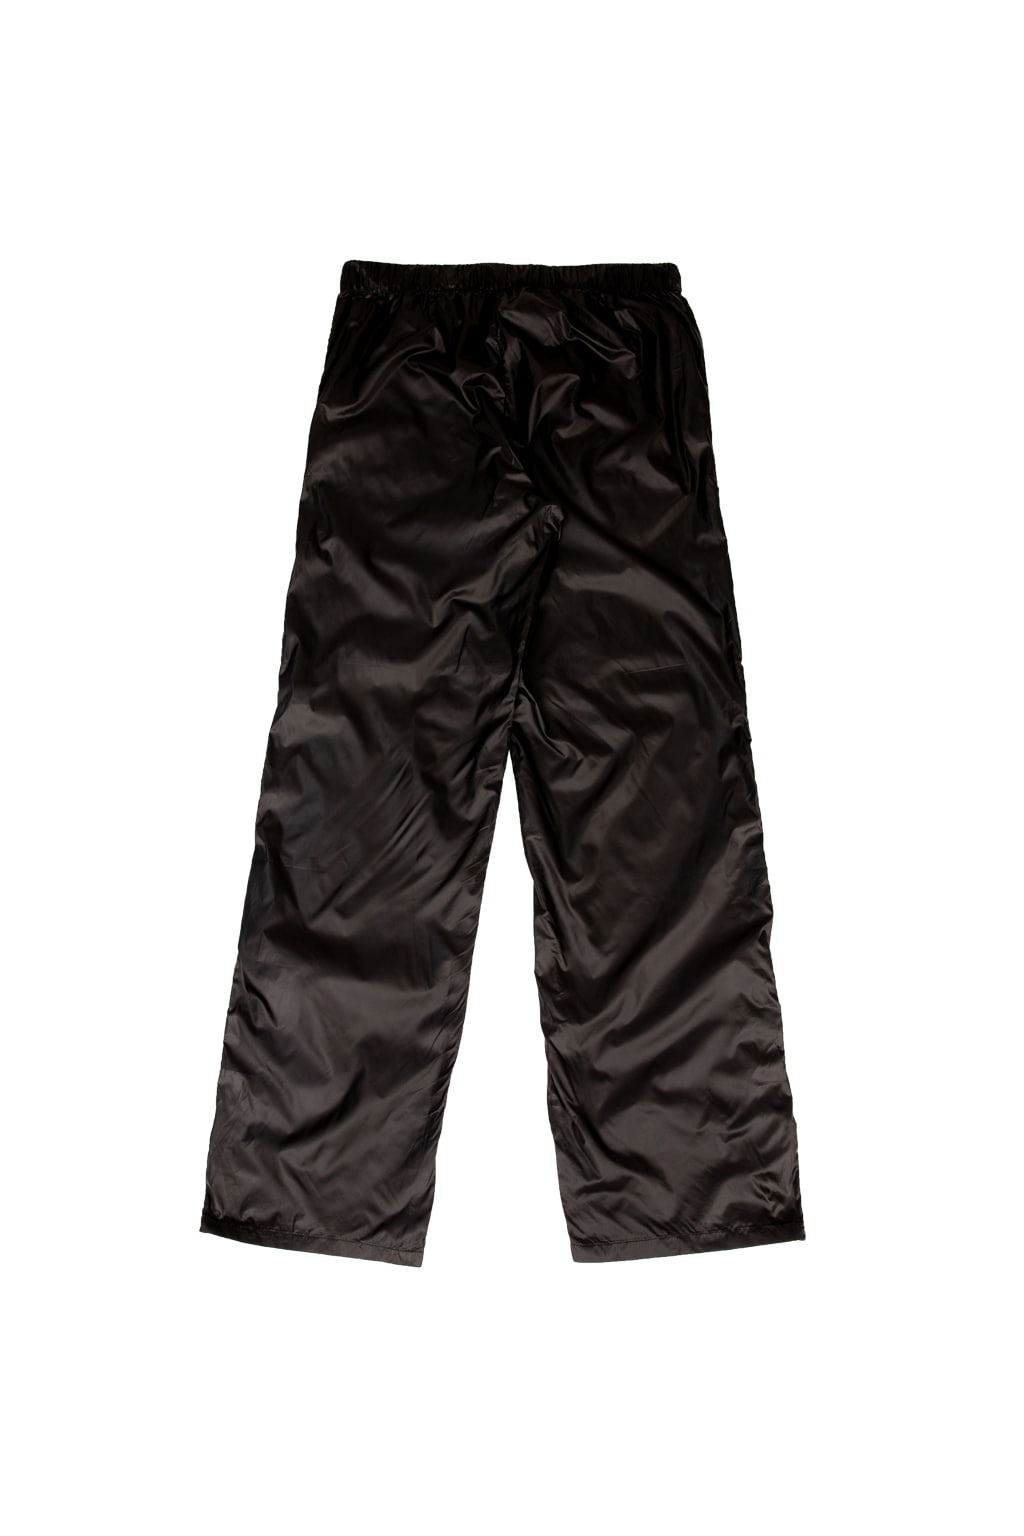 high gloss nylon track pants - black